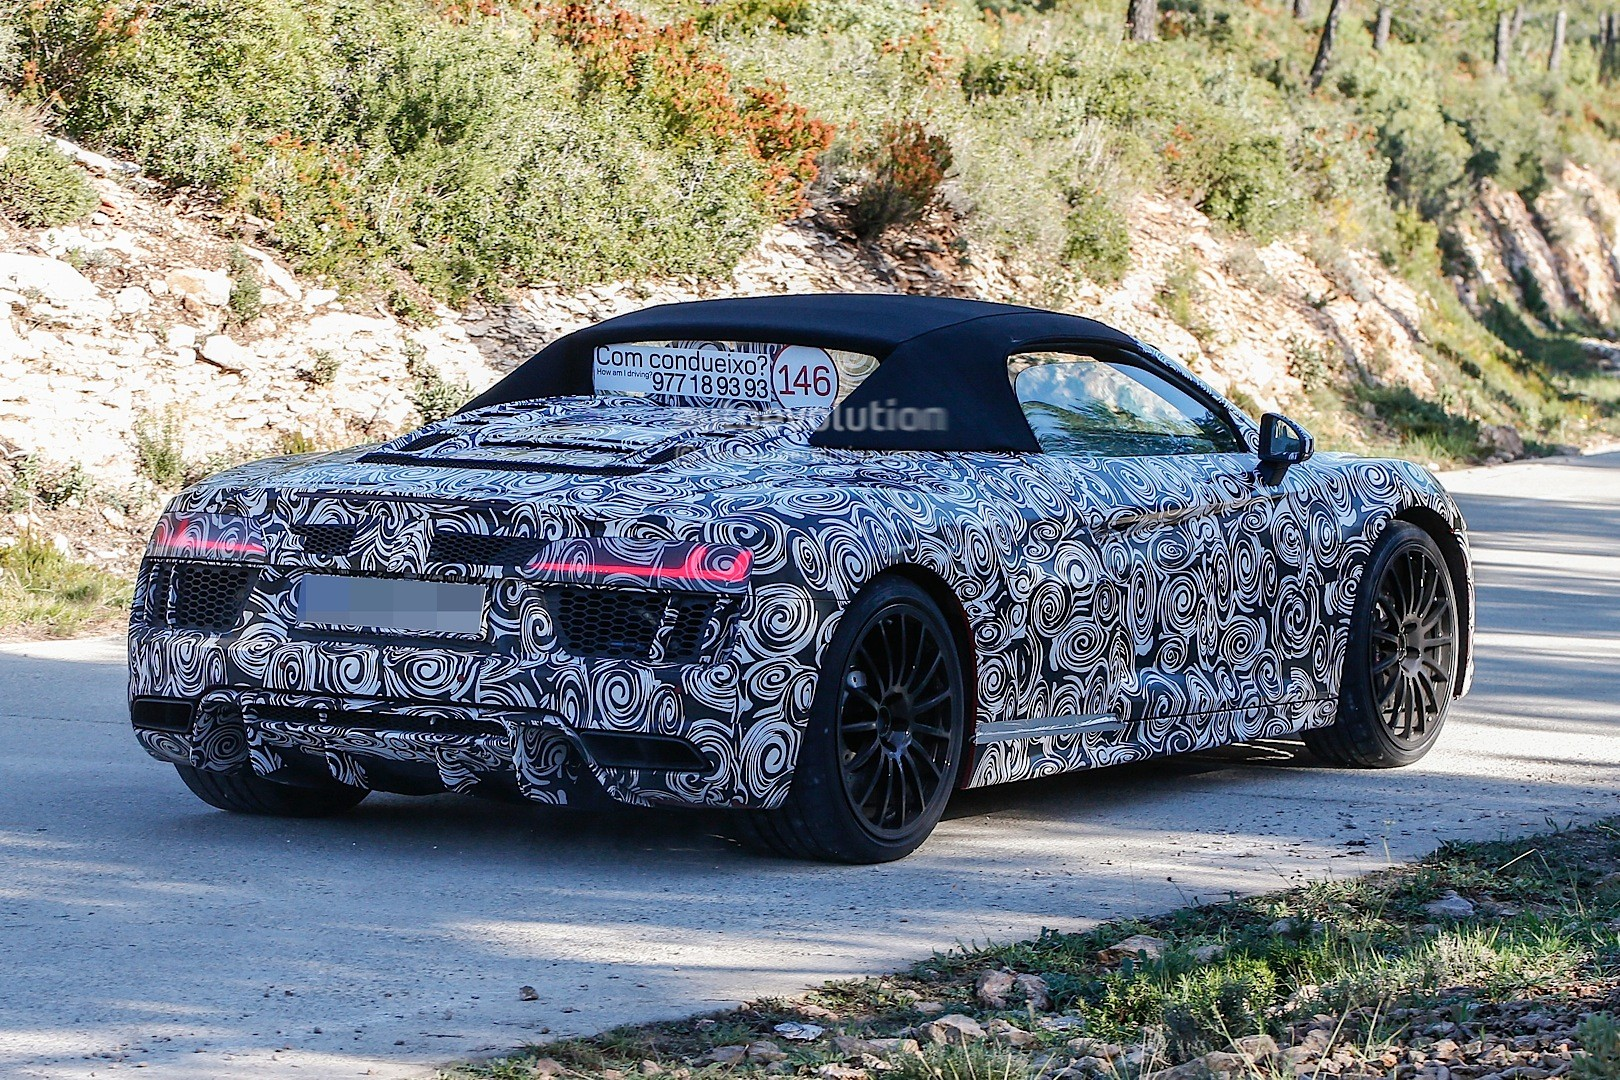 2017 Audi R8 Spyder Spied in Full Camo, Funny Sticker Asks About Driver's Skill - autoevolution